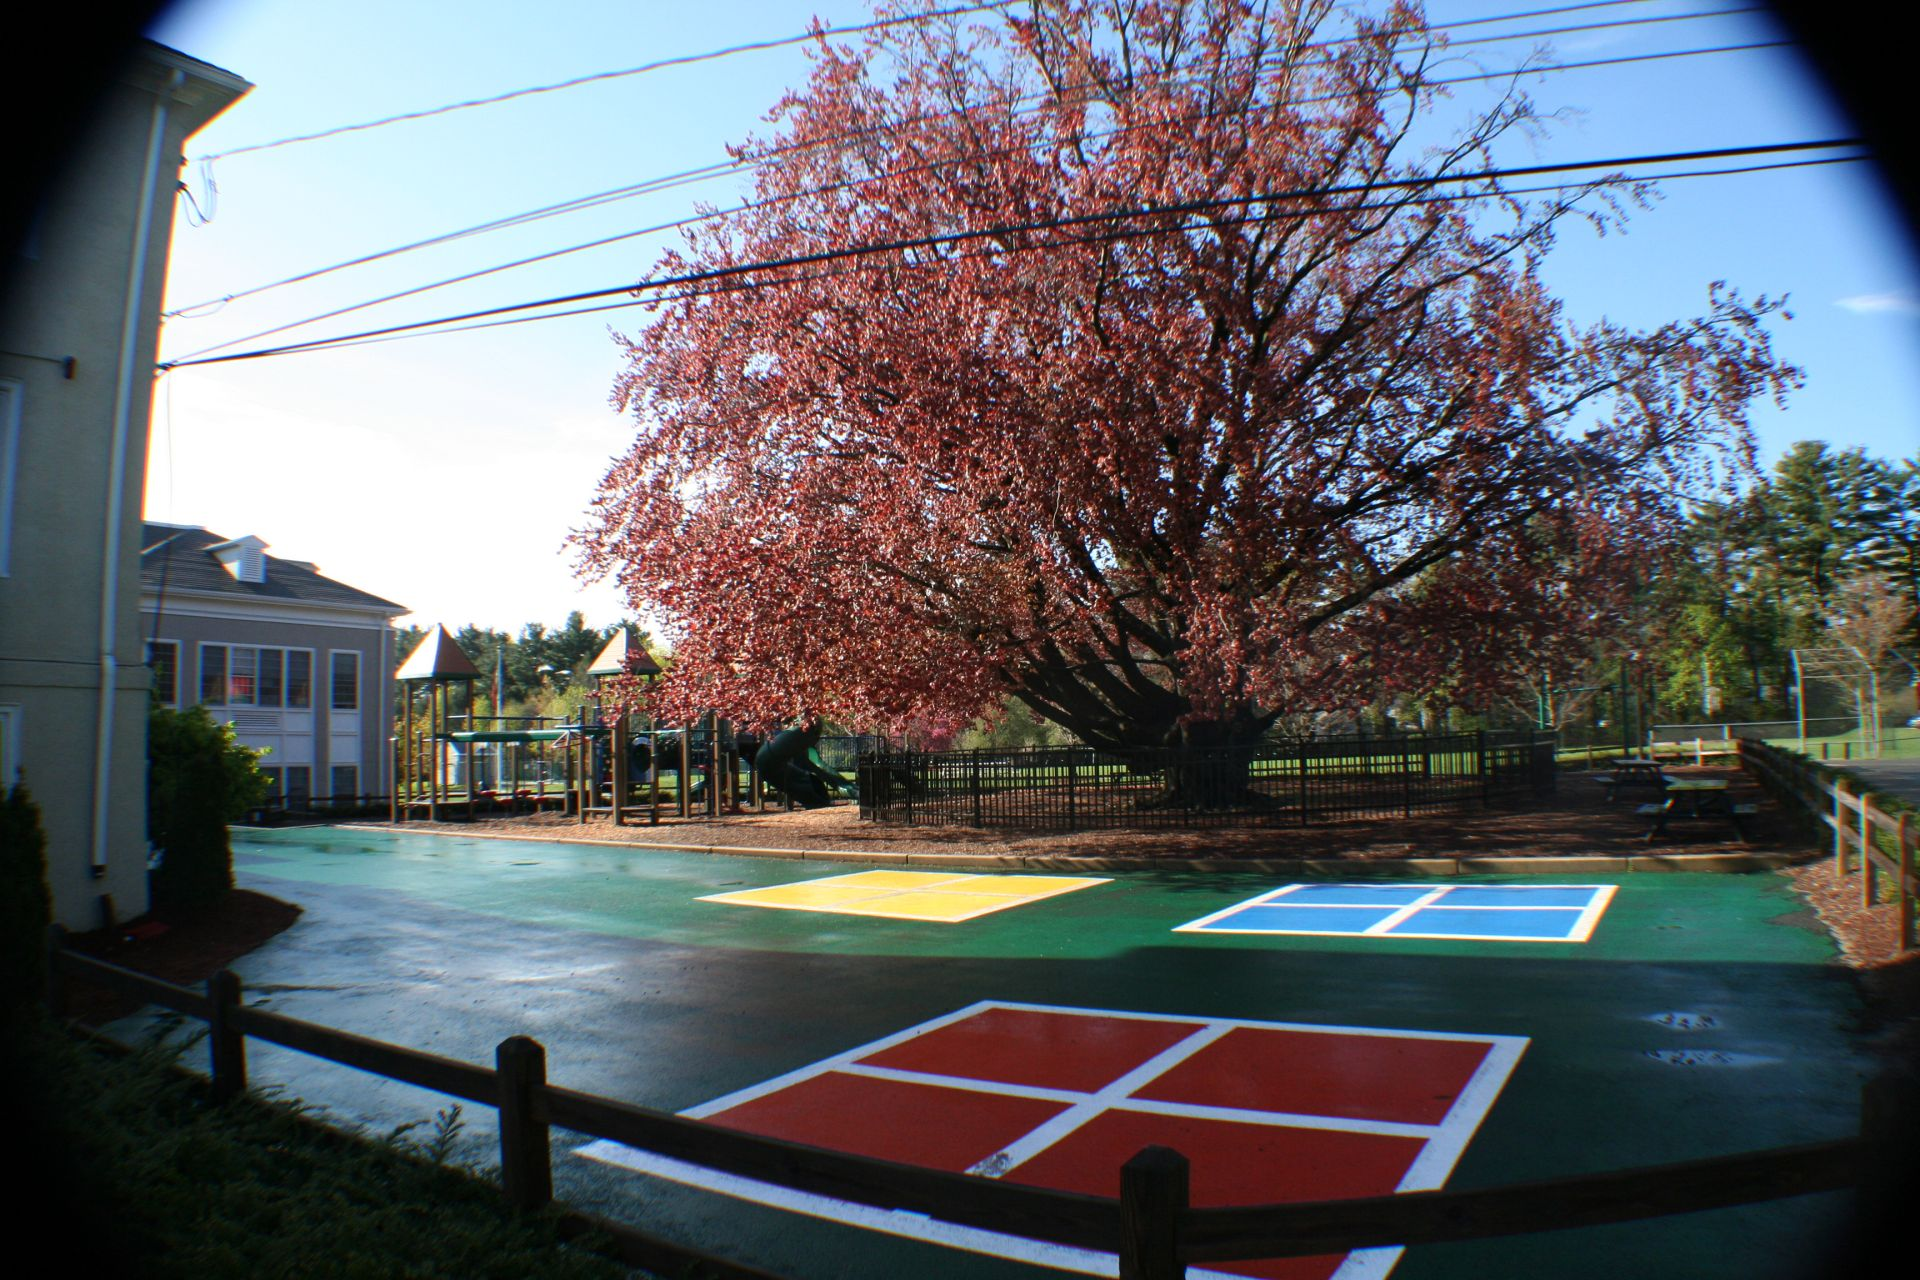 Fessy Playgrounds: Fessenden has multiple playgrounds and outdoor recreational facilities throughout the campus.